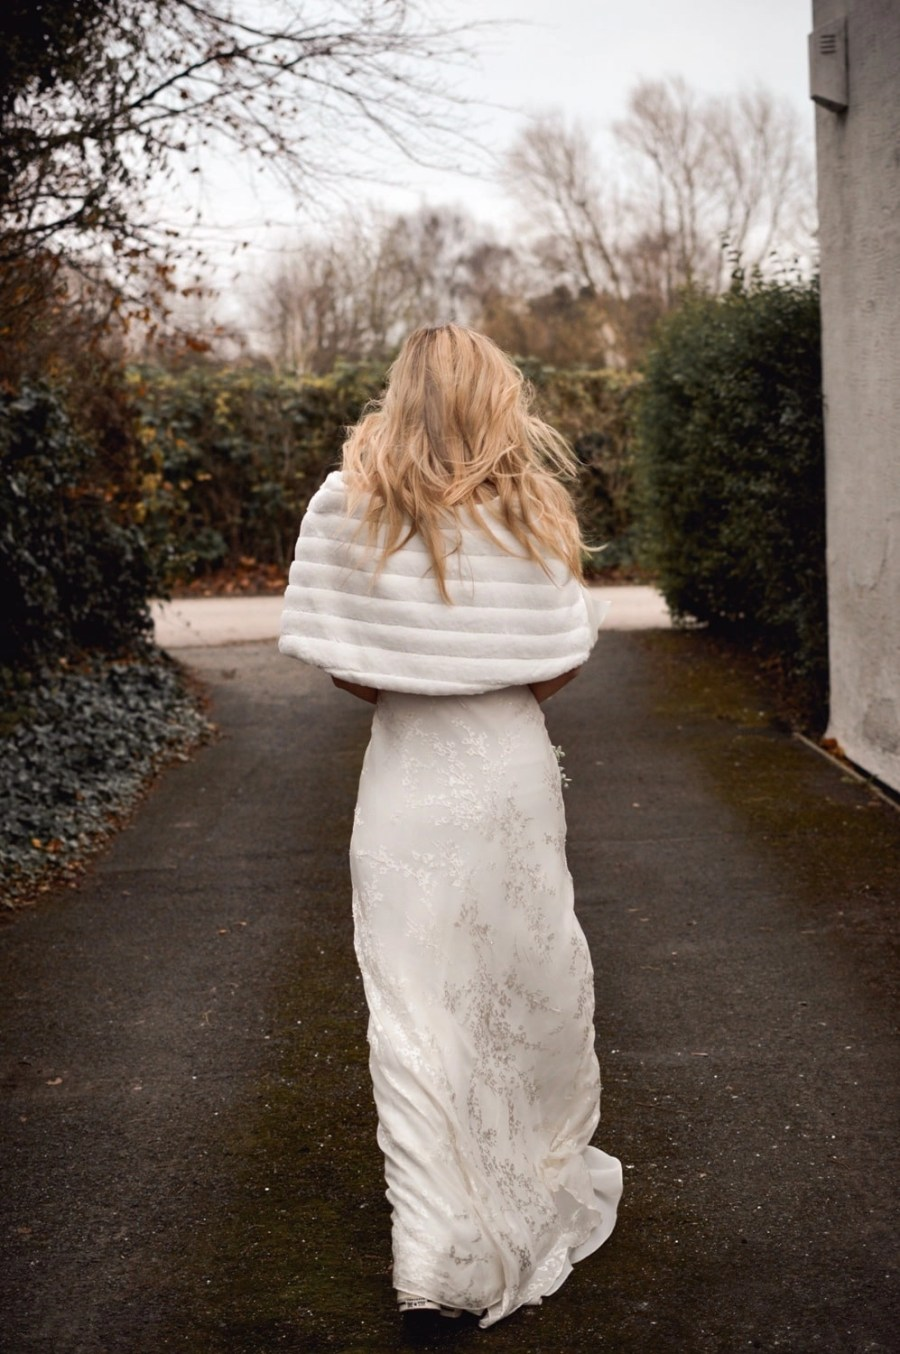 BB22 – faux fur bridal cape wrap shrug with a pretty satin bow on blonde bride with hair down back view walking